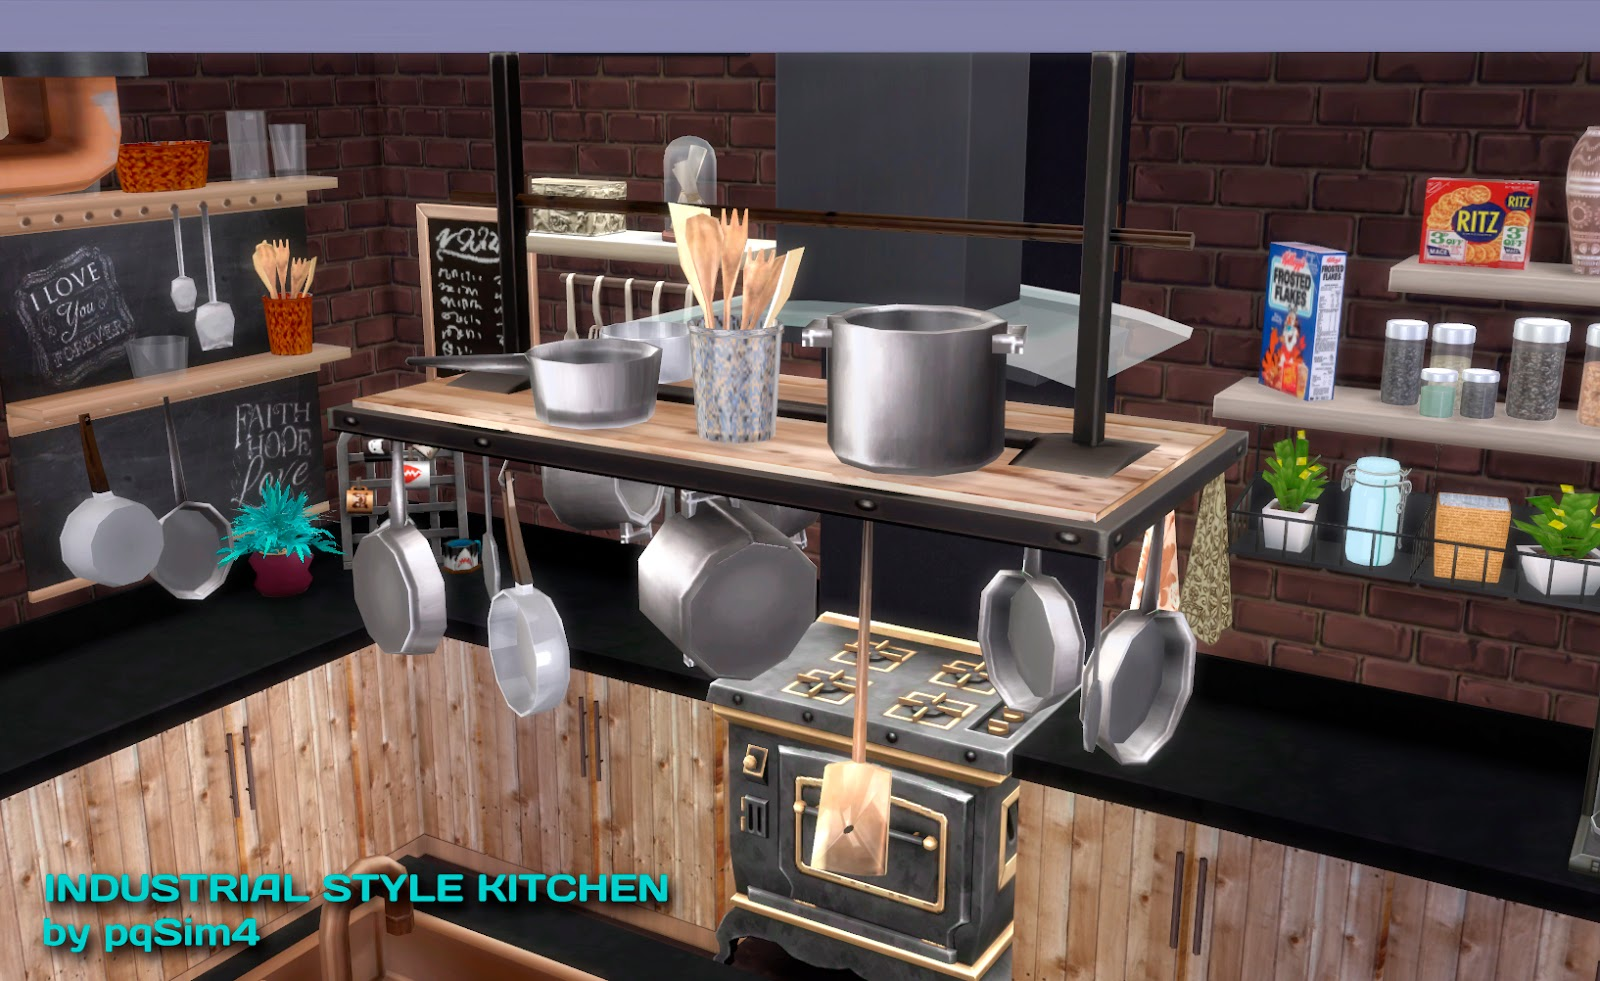 Sims 4 industrial style kitchen for Sims 4 kitchen designs